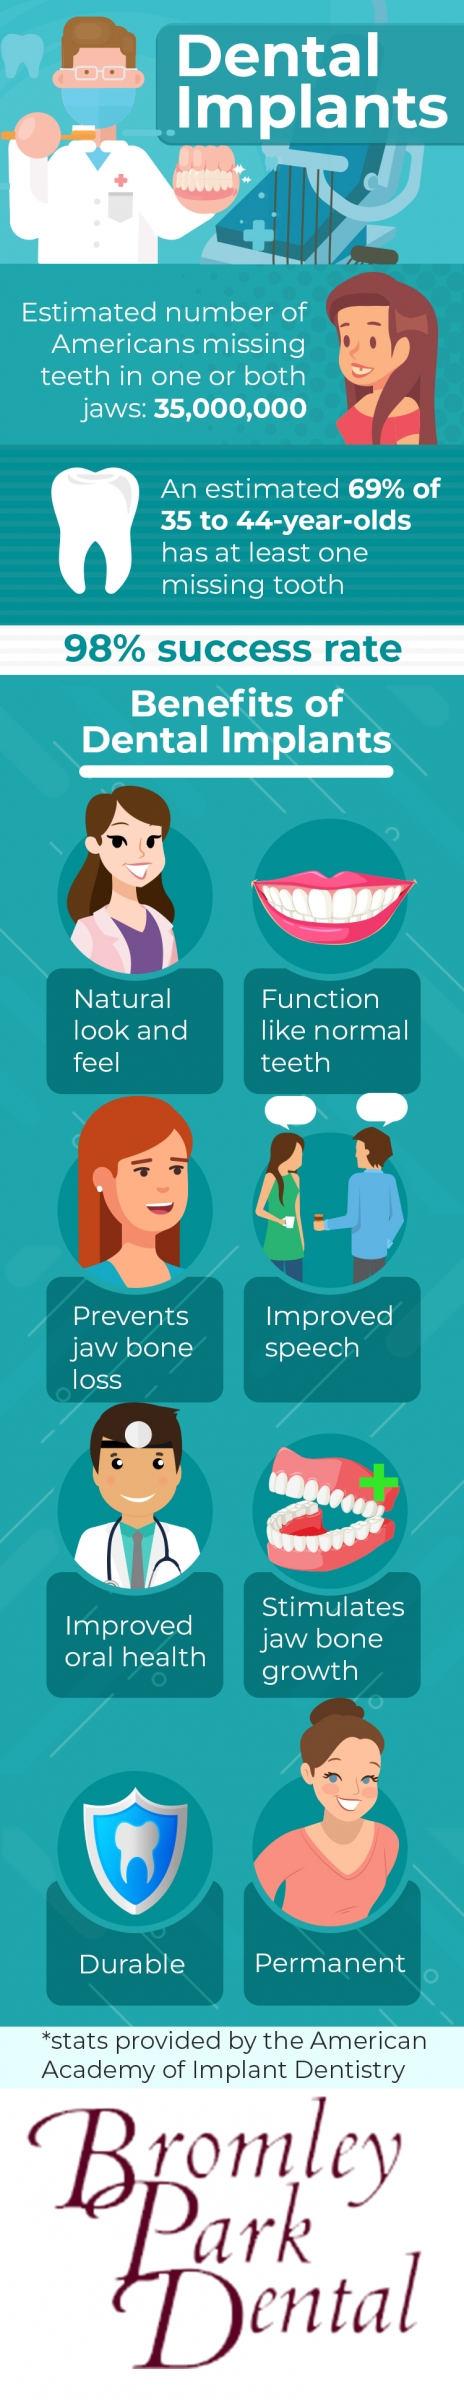 dental implants infographic brighton thornton commerce city colorado cosmetic dentistry